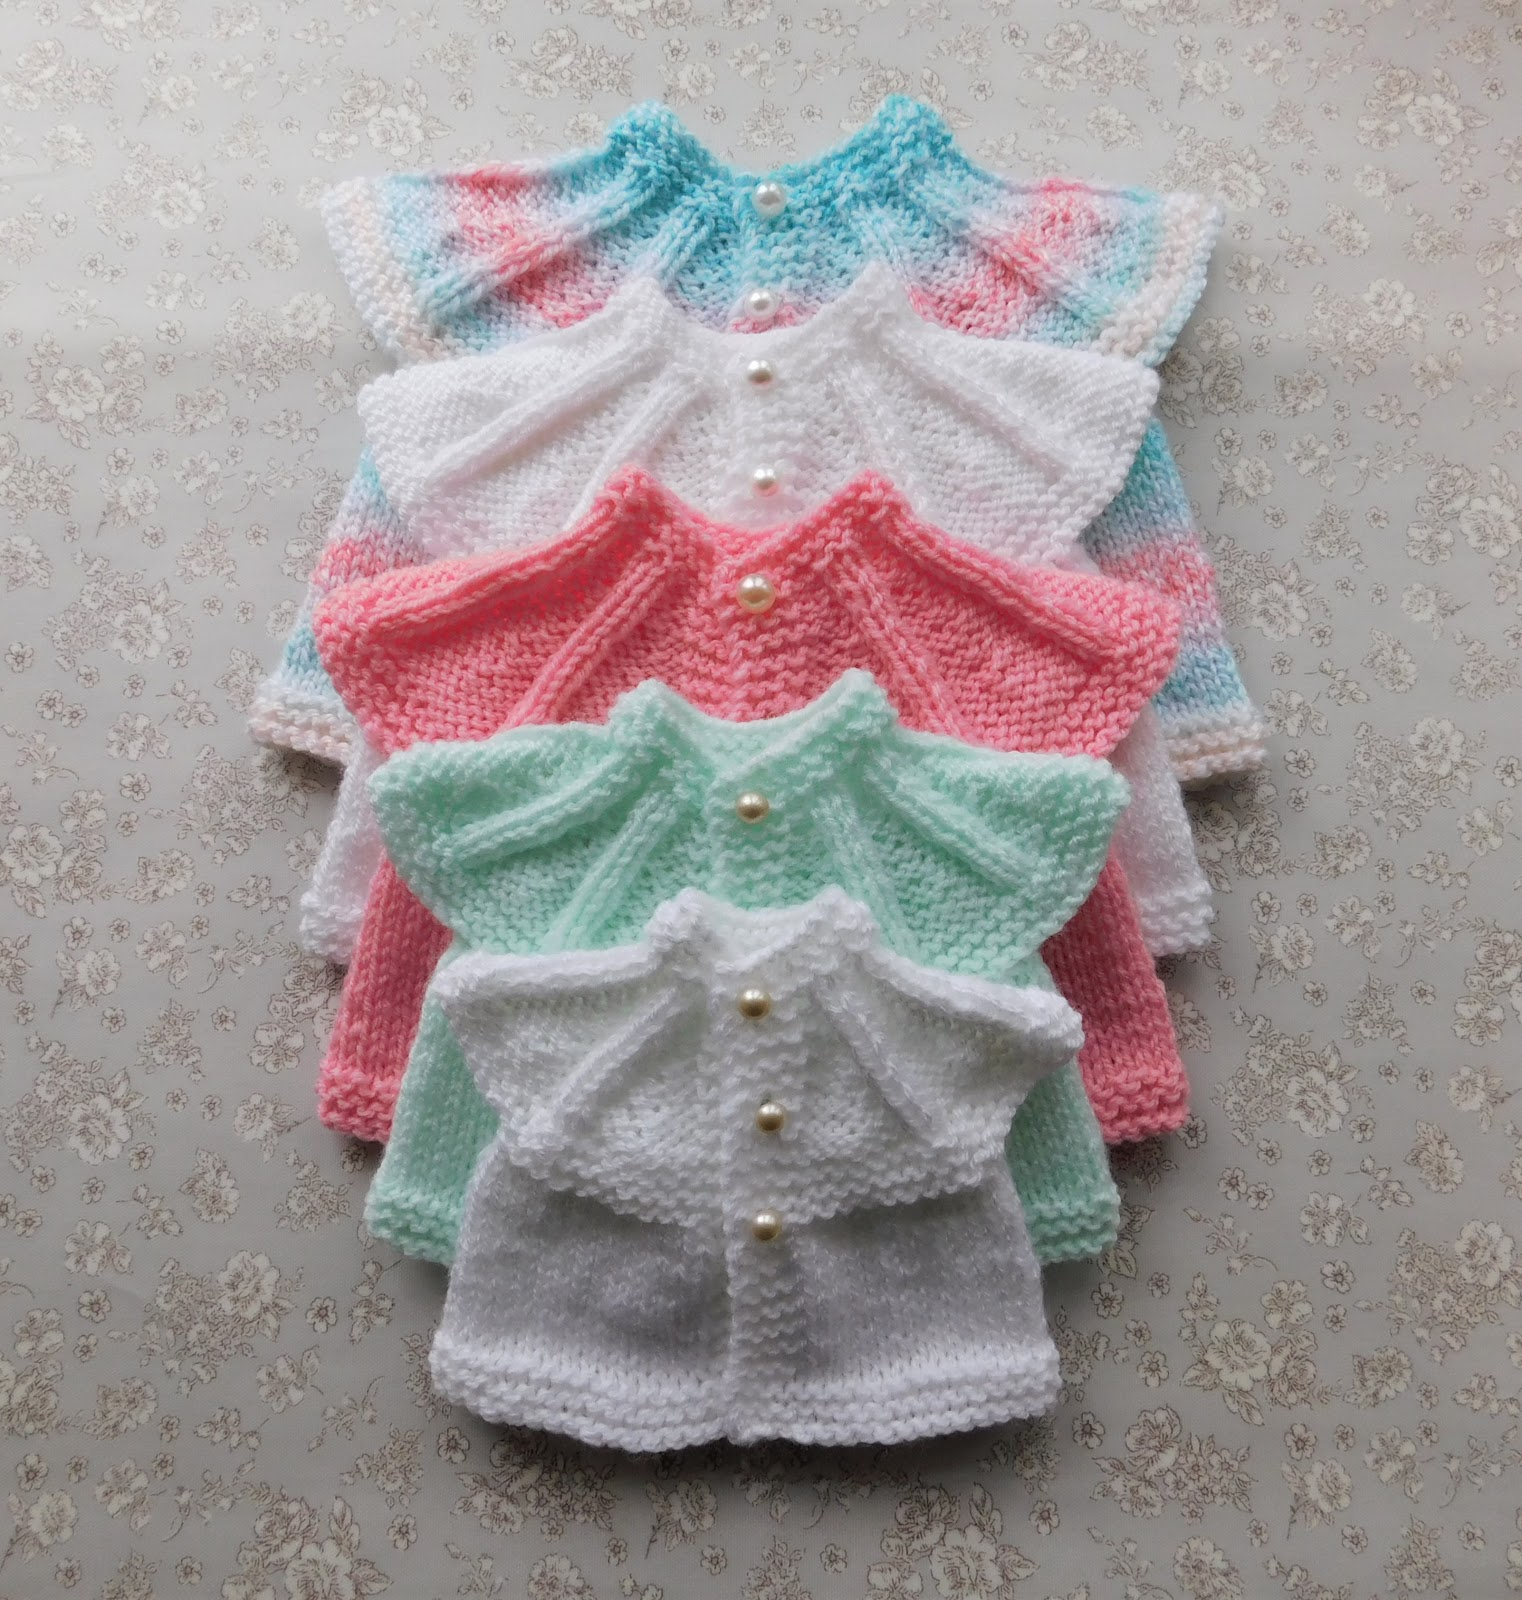 7c915cd3b Marianna s Lazy Daisy Days  EVIE Baby or Baby Doll All-in-One Tops